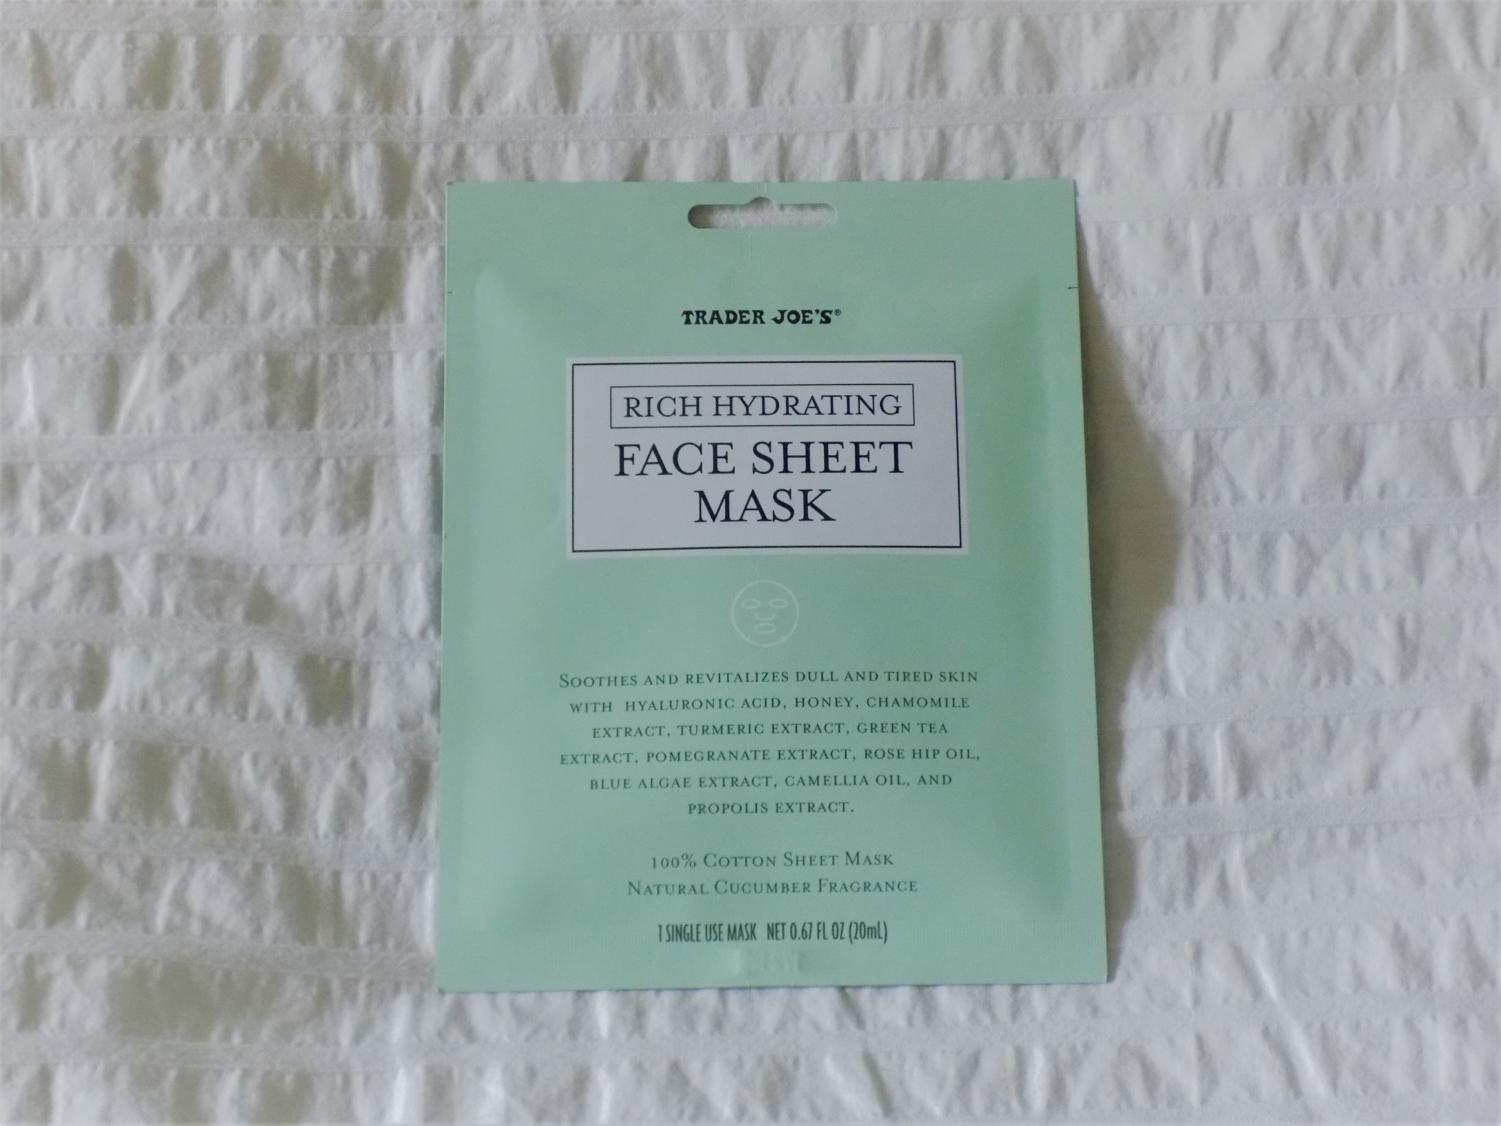 Trader Joe's has everything, even sheet masks!